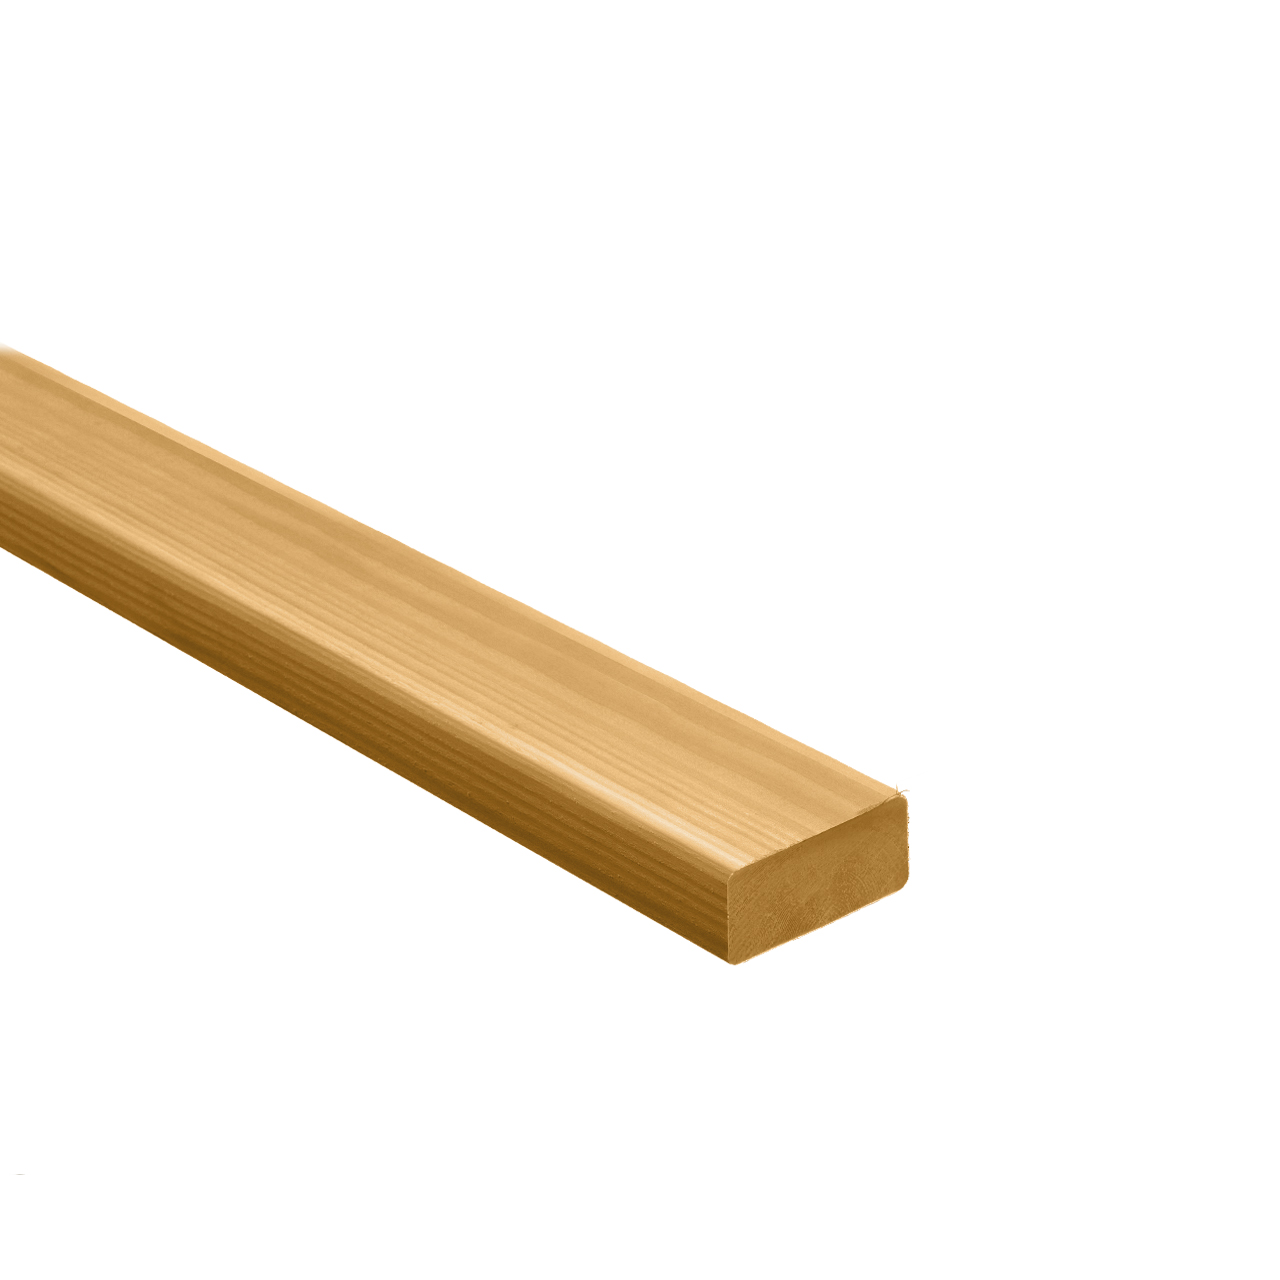 """Timber CLS 3"""" x 2"""" (38mm x 63mm Finished Size) 2.4m Vac Vac Treated image 0"""